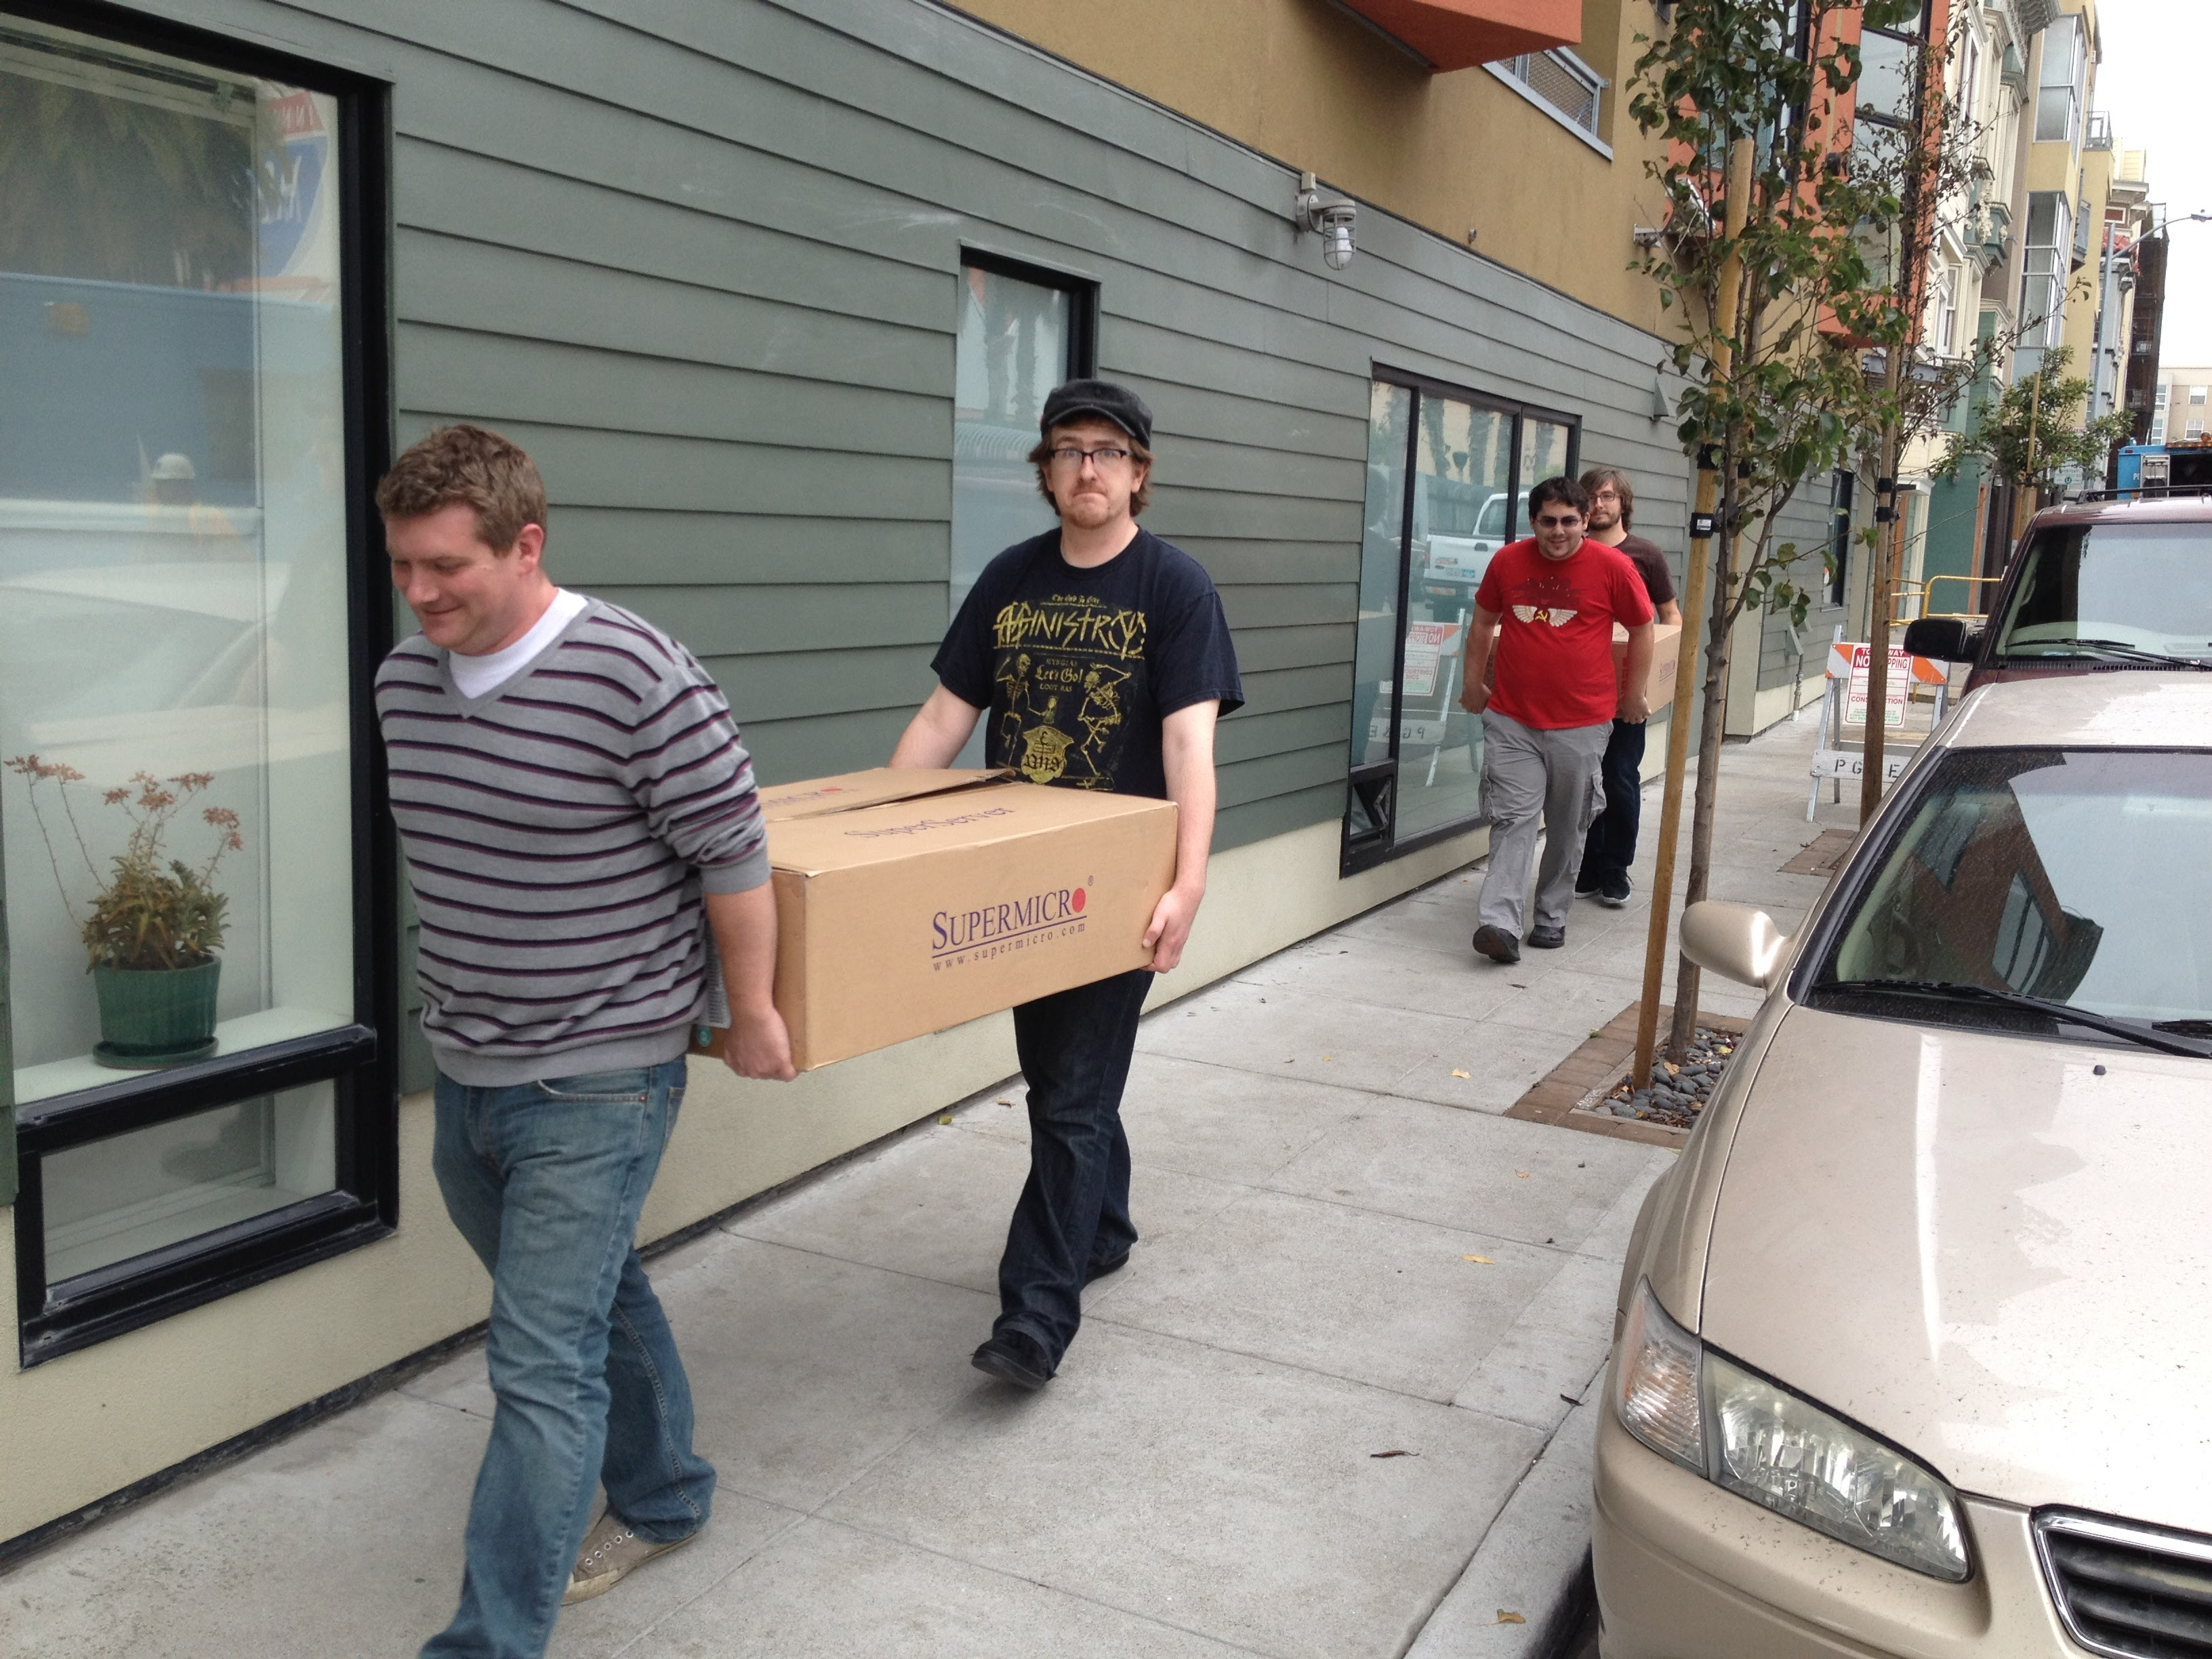 Simon Wistow and Patrick McManus carry a box across the street to Fastly's new office.